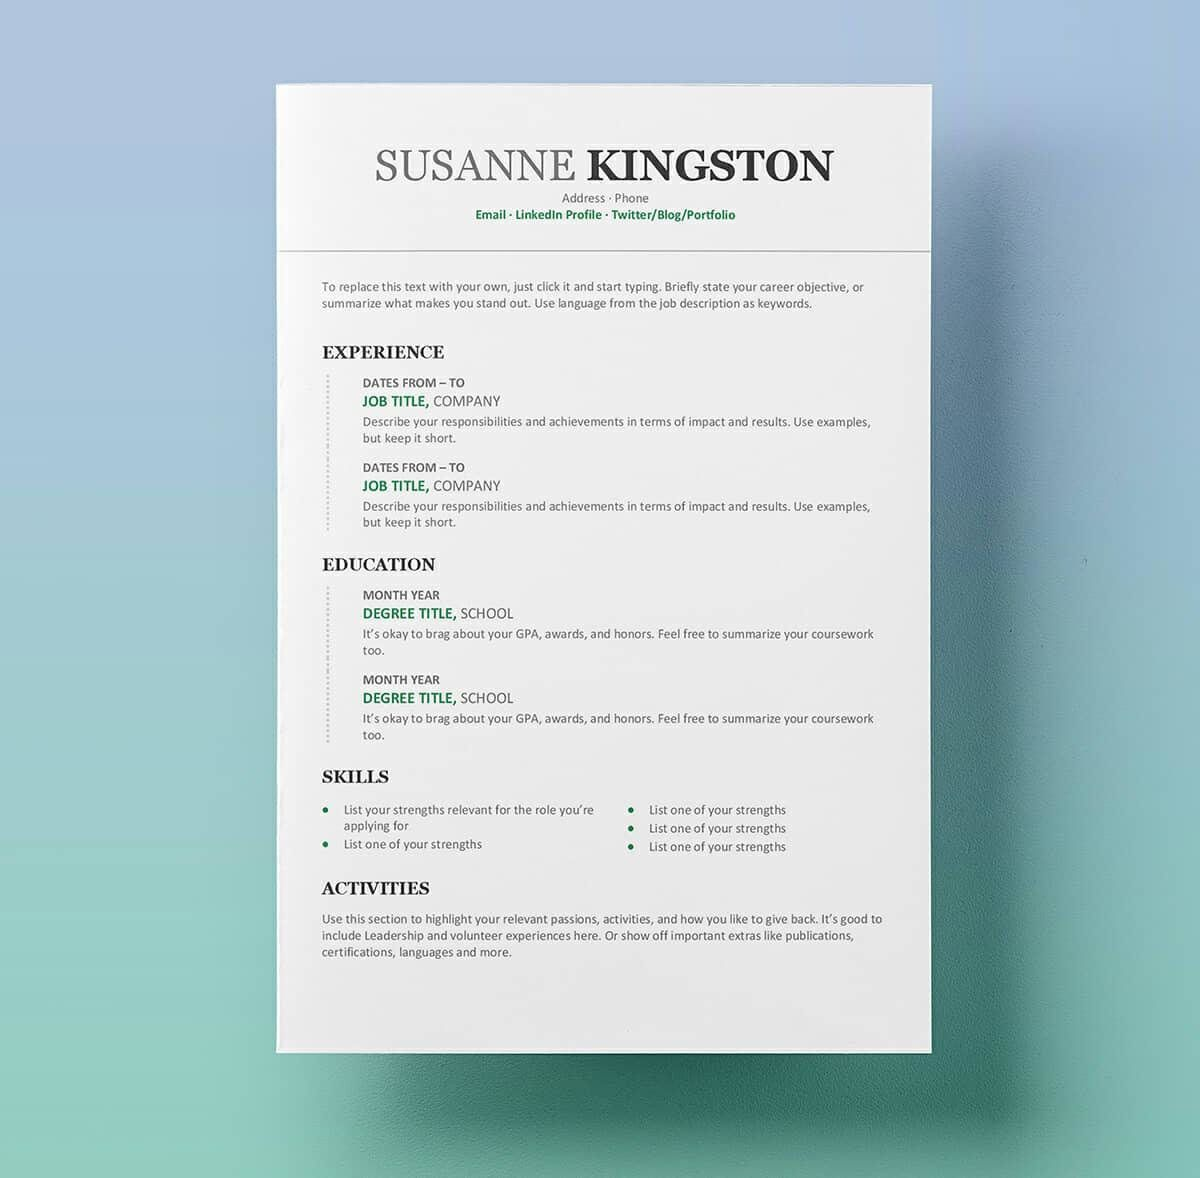 008 Formidable Free Microsoft Word Resume Template Concept  Templates Modern For DownloadFull